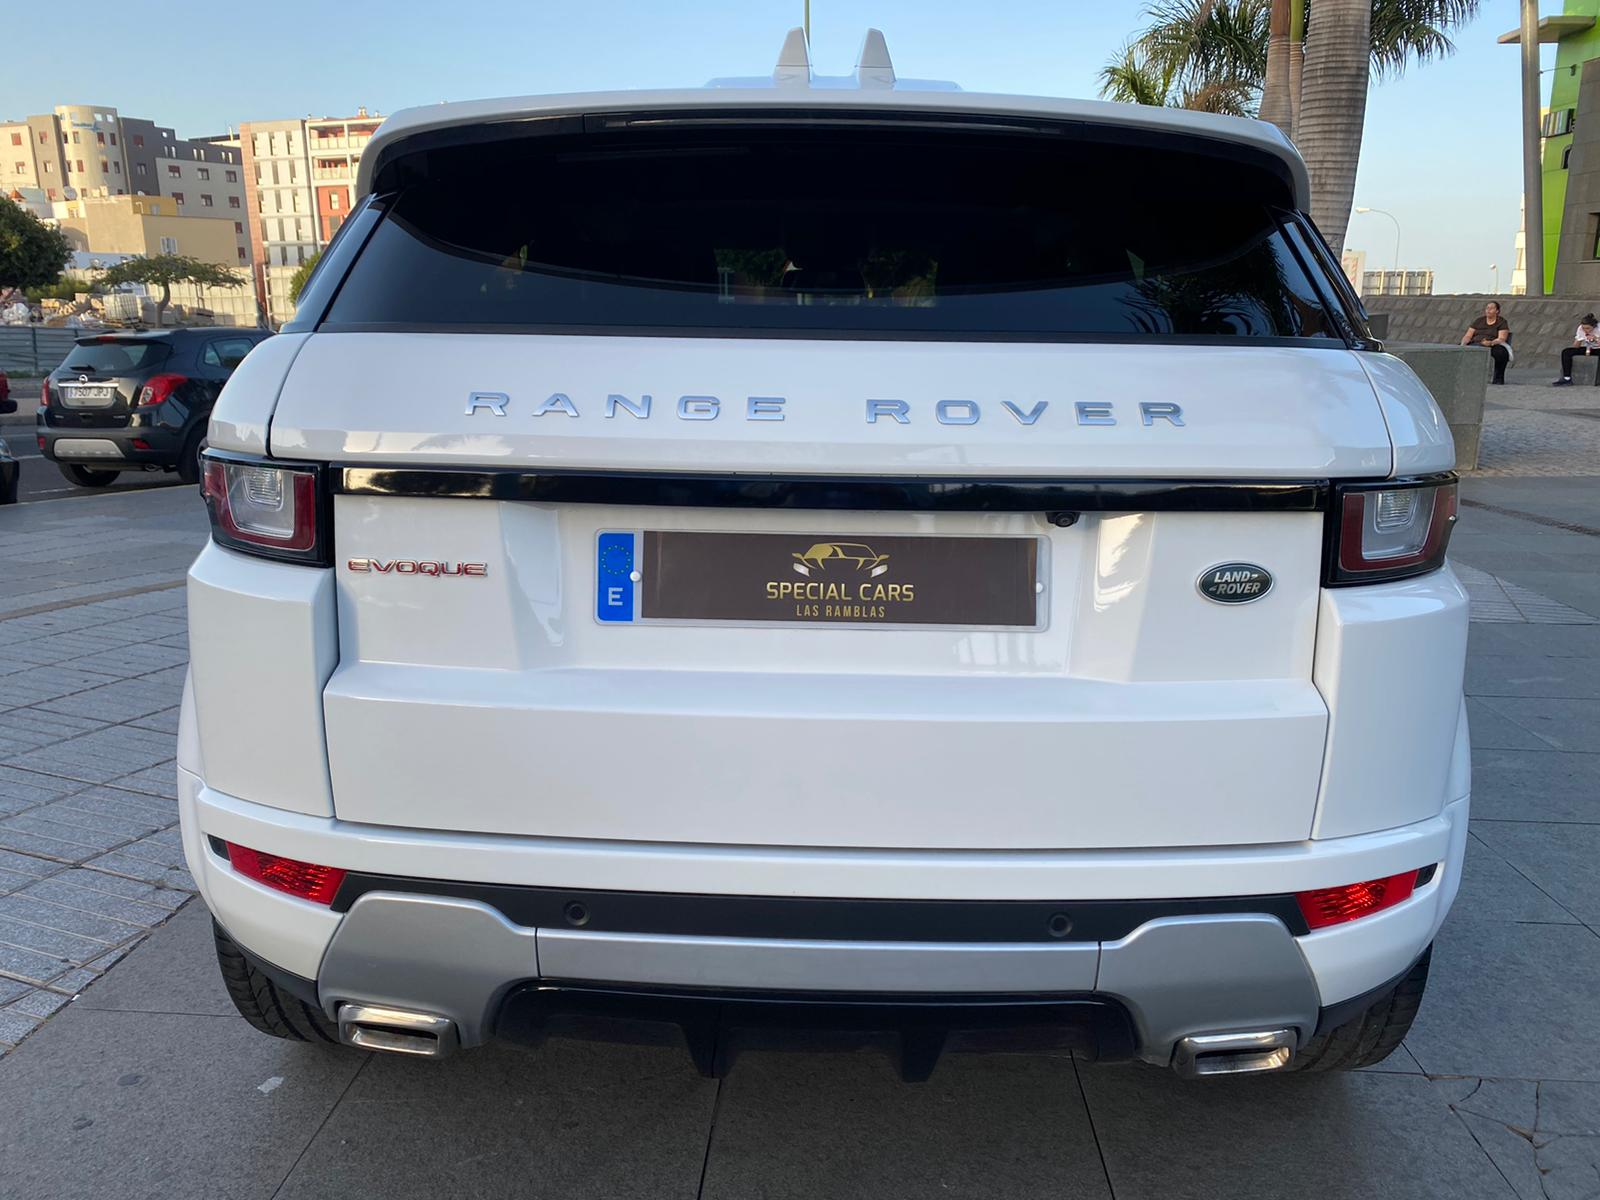 RANGE ROVER EVOQUE DYNAMIC 2.0 TD4 2016 FEB20 (5)